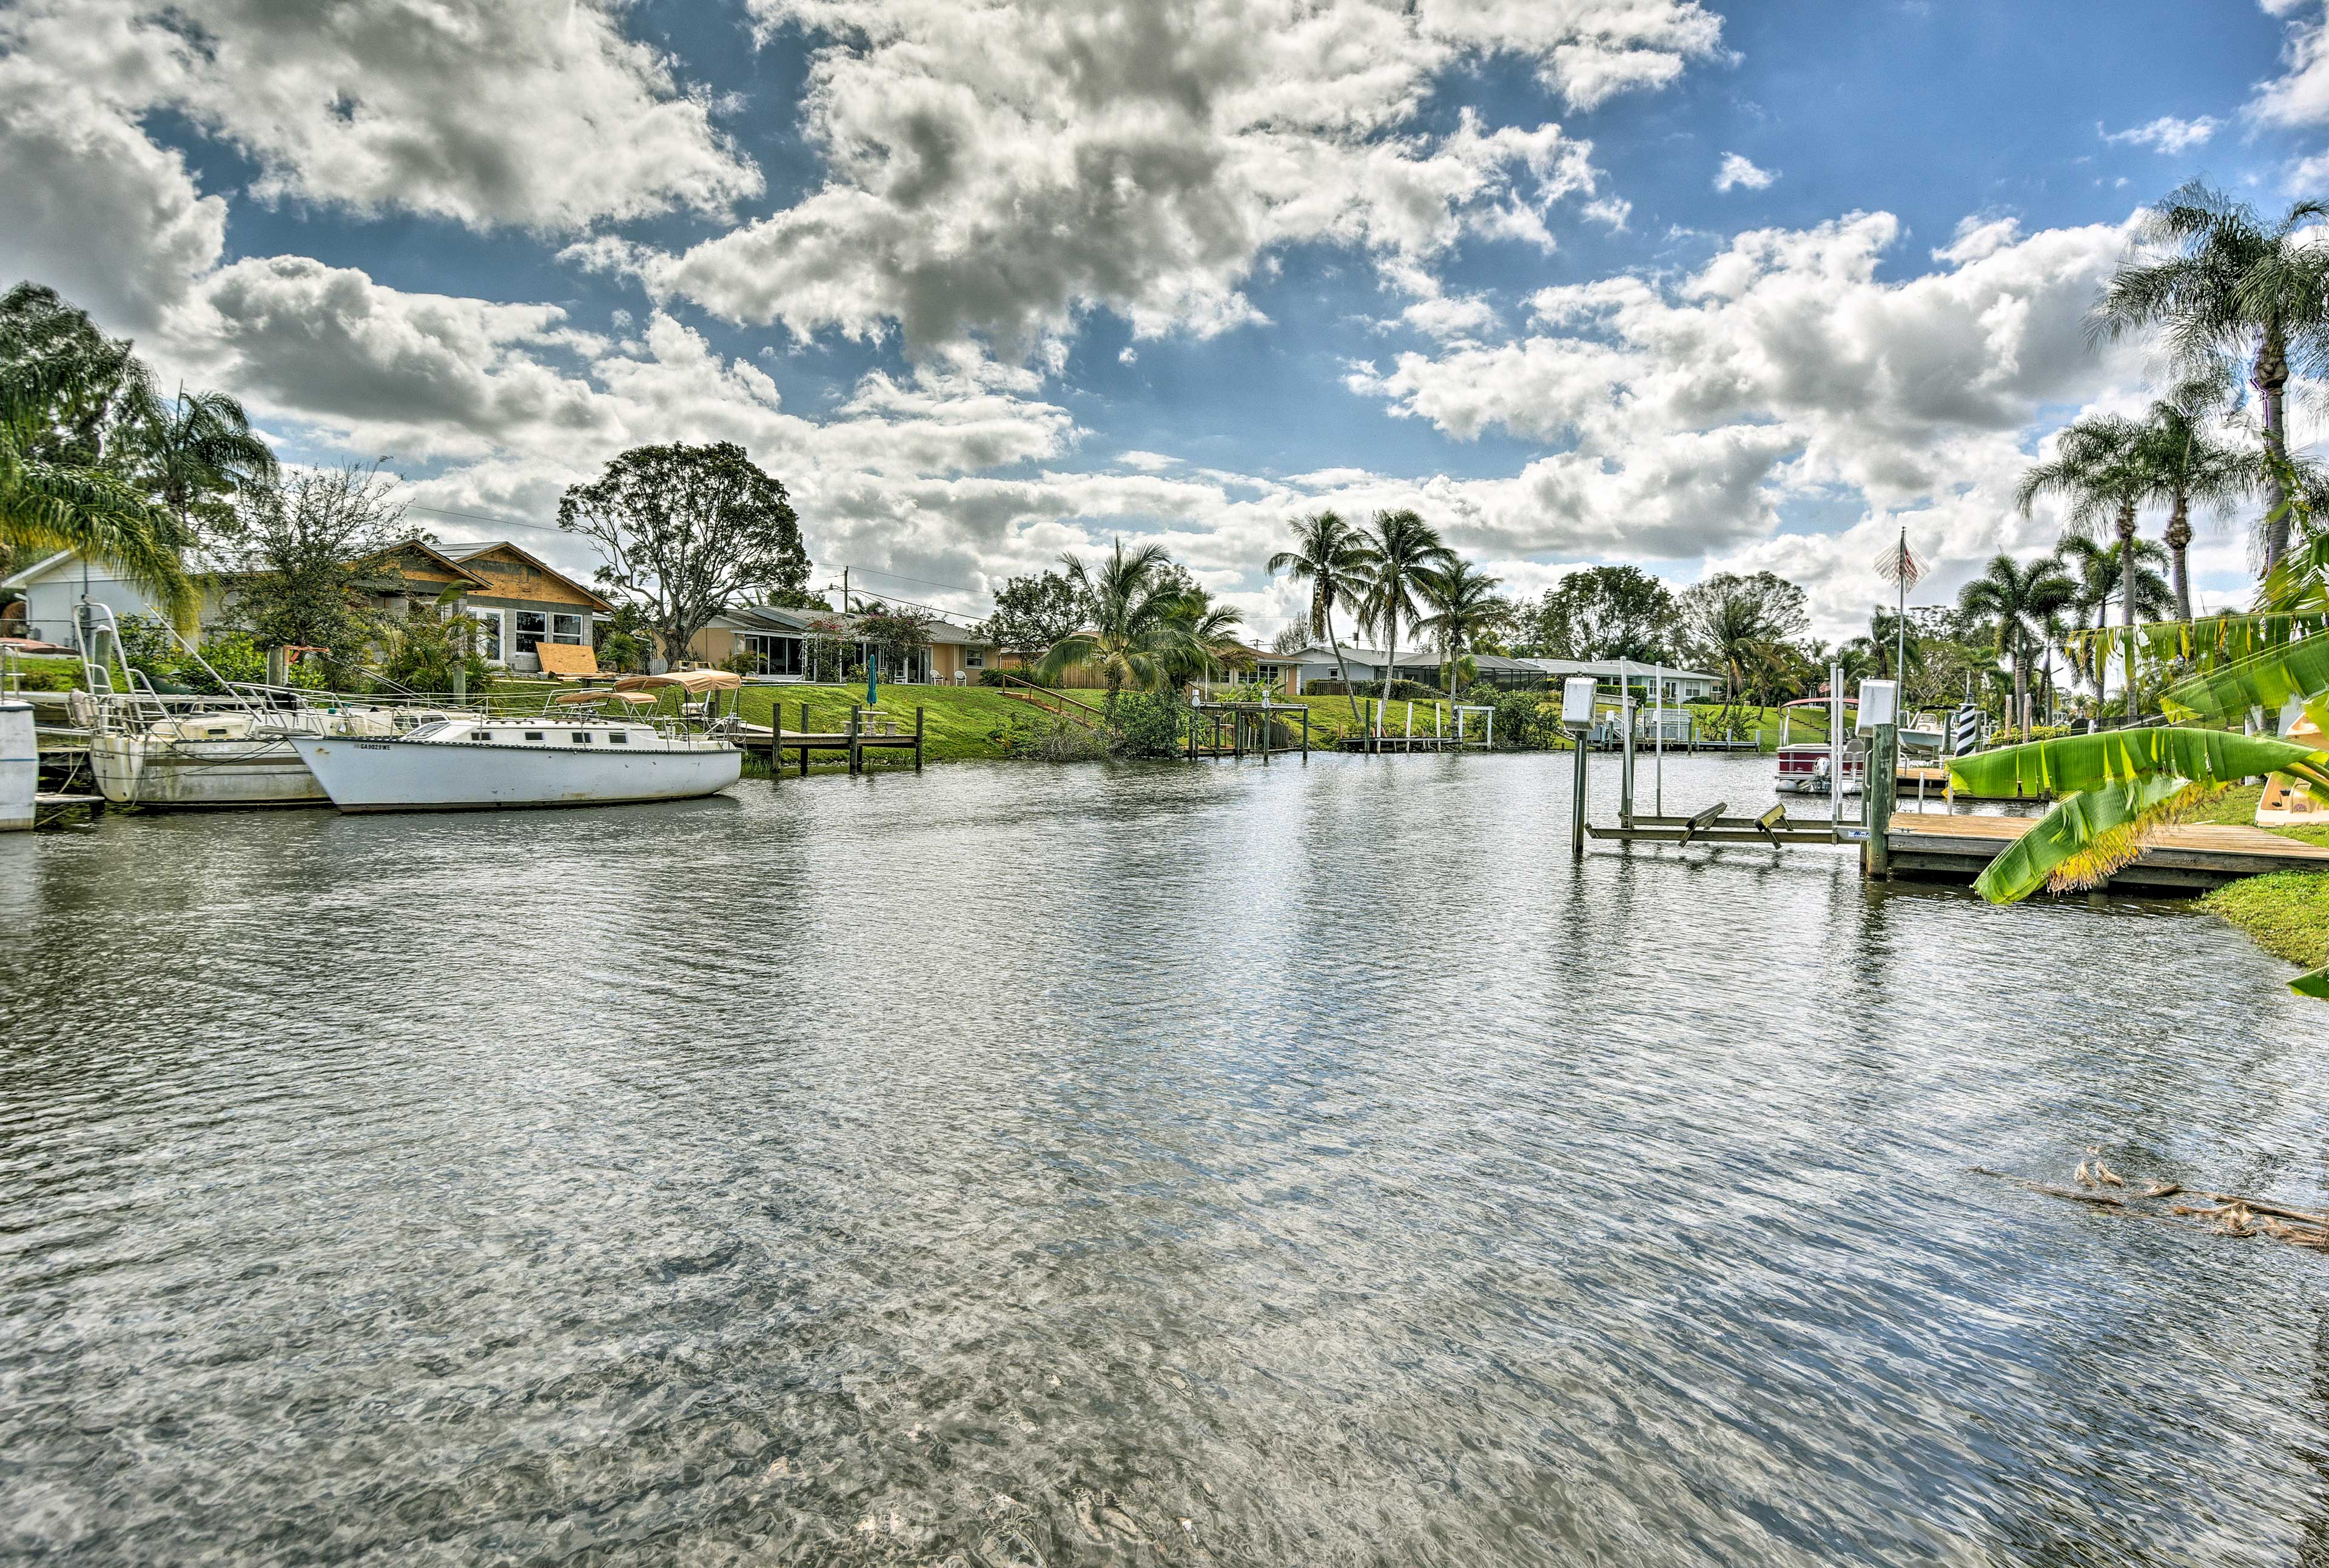 Explore Port. St Lucie town from a prime location for your next Florida getaway!